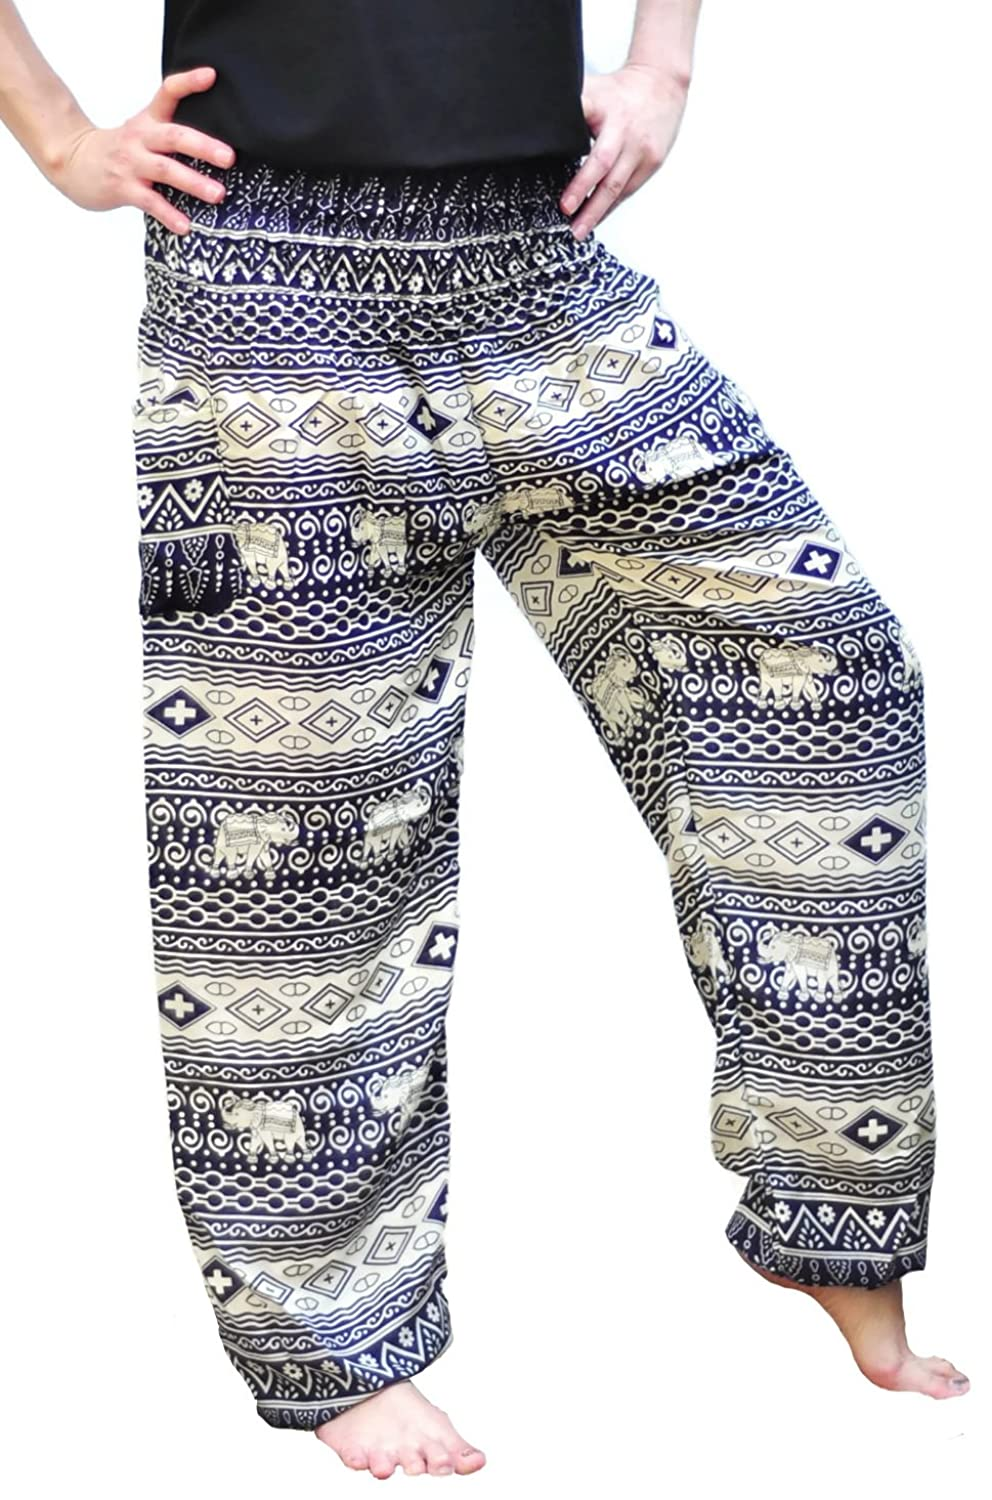 Siam Trendy Women's Thai Rayon Pants One Size Elephant Design